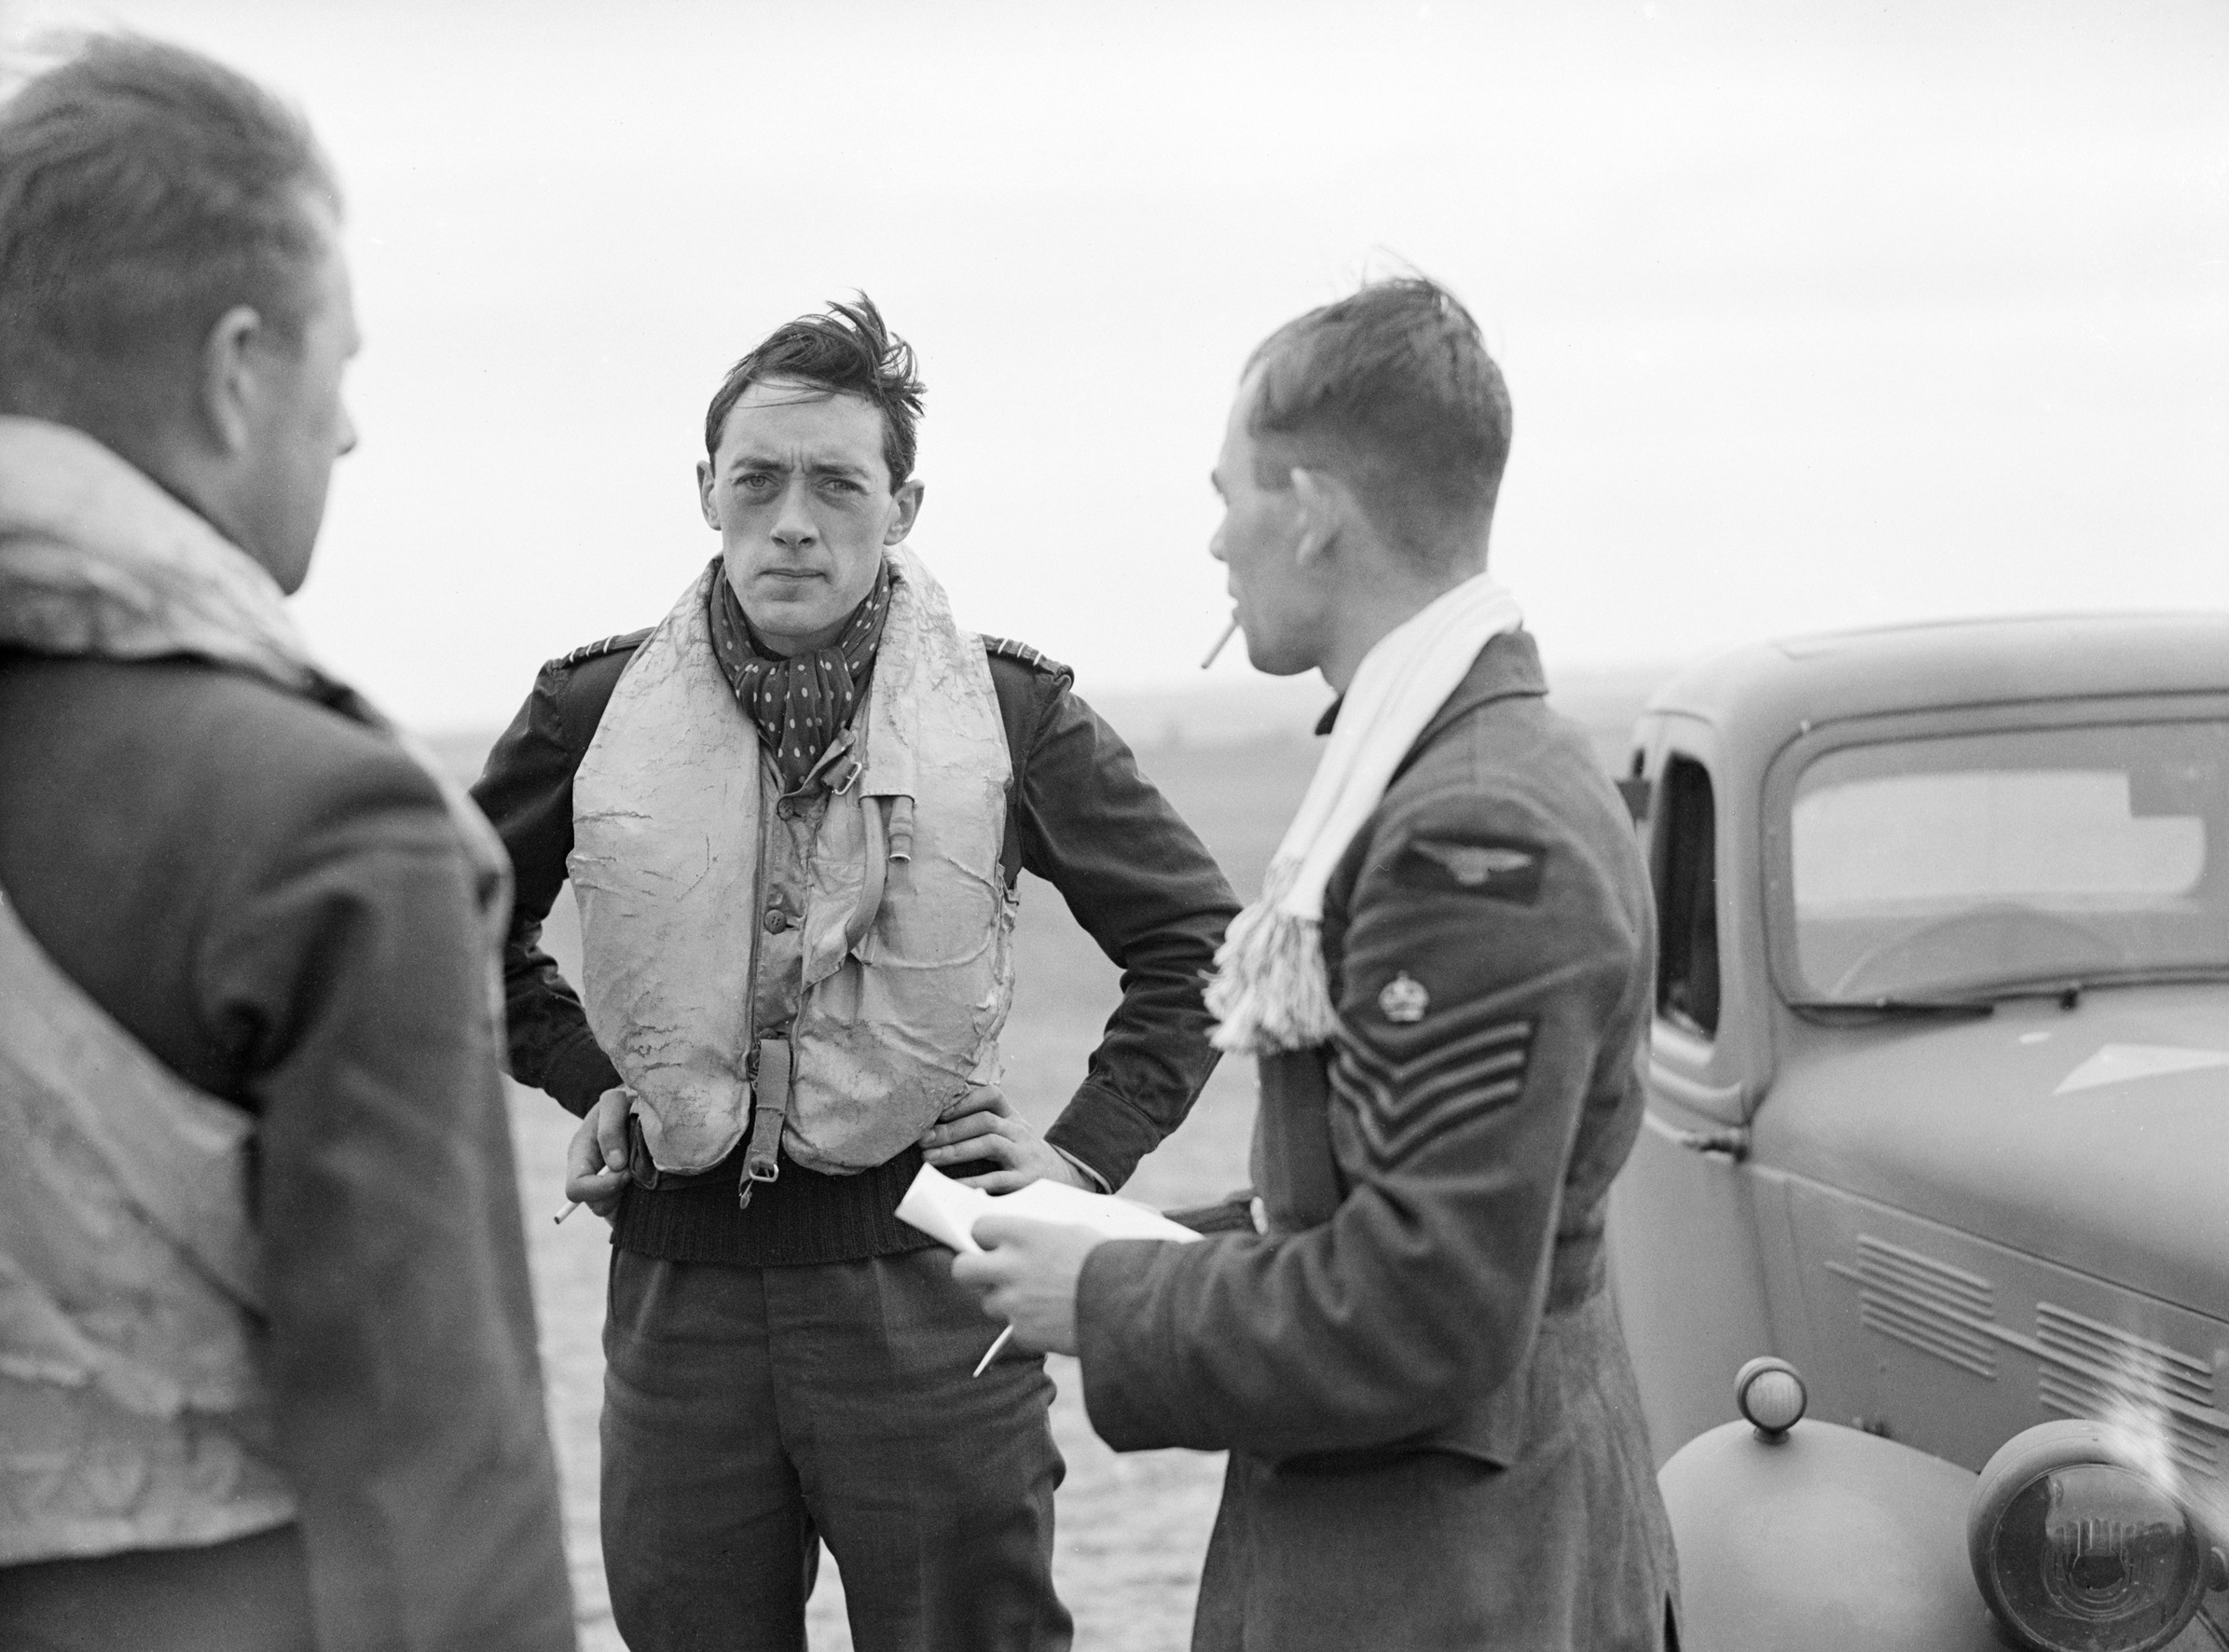 Squadron Leader Brian 'Sandy' Lane of 19 Squadron (centre) confers with Flight Lieutenant Walter 'Farmer' Lawson and Flight Sergeant George 'Grumpy Unwin at Fowlmere near Duxford, September 1940.